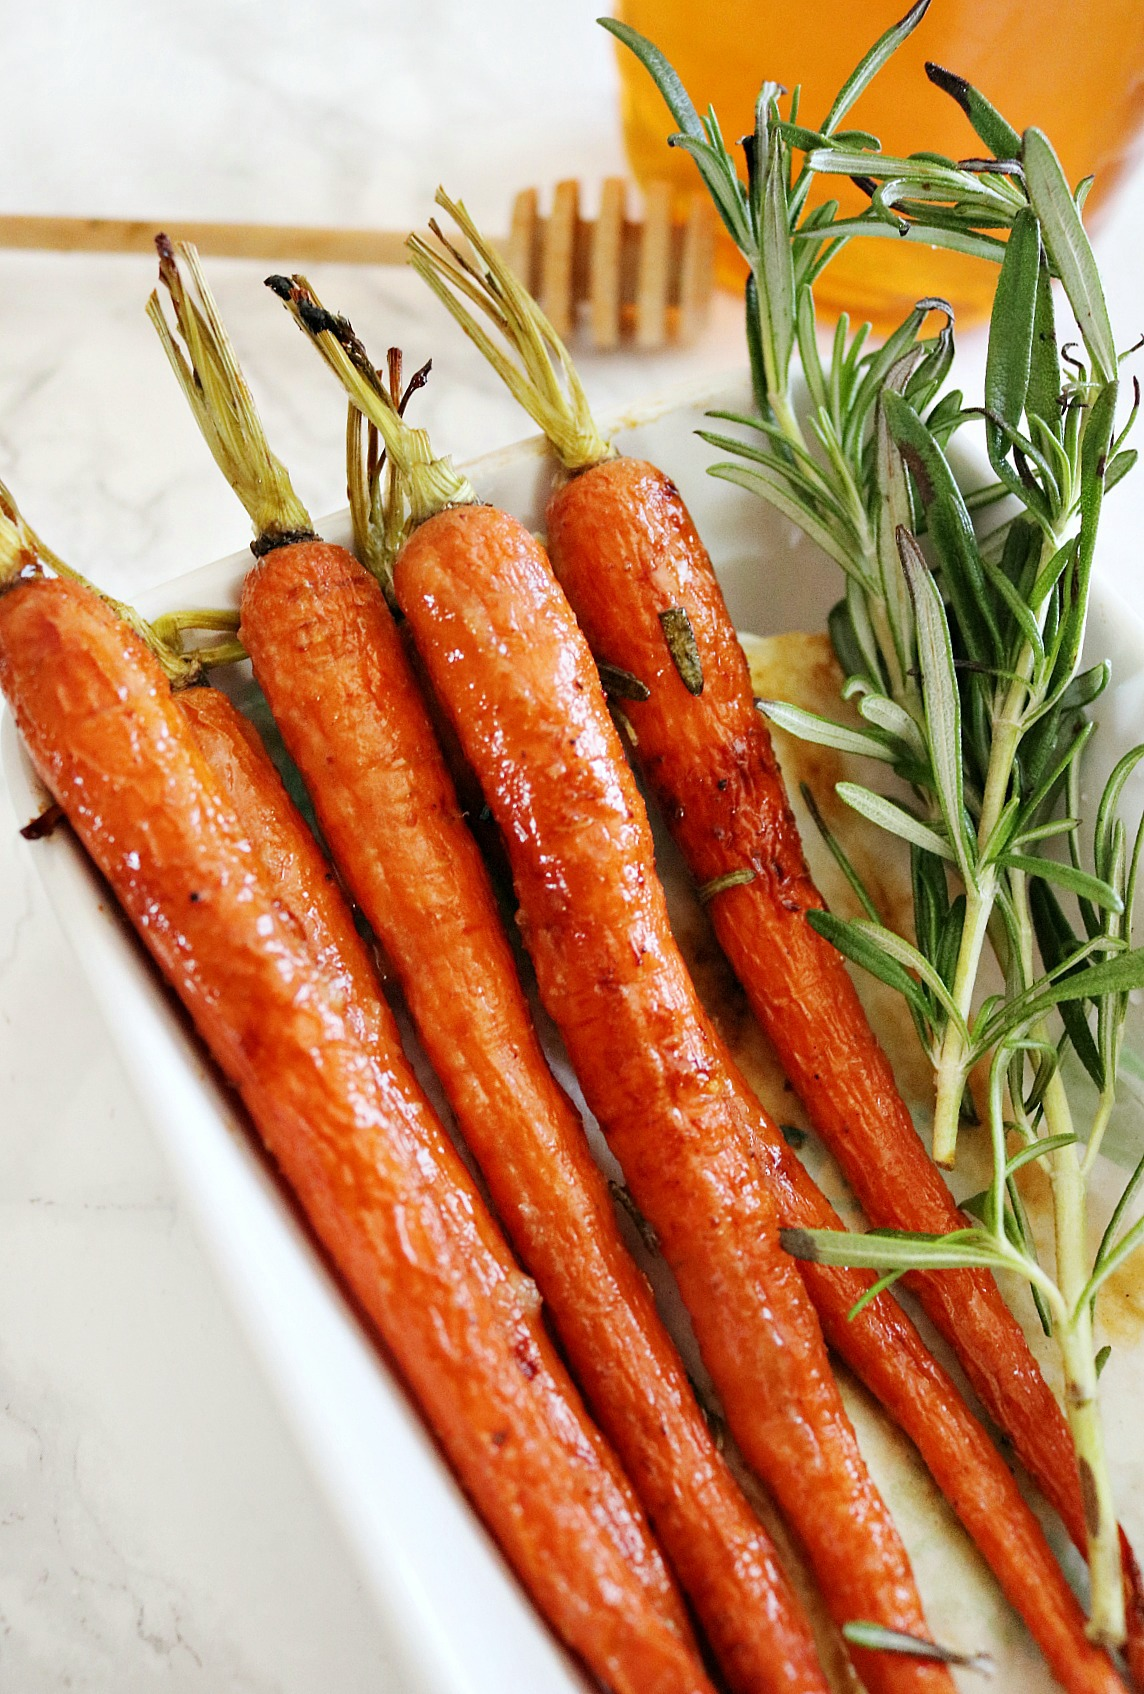 If you're trying to get your kids to eat more vegetables, this Honey Glazed Carrots recipe is going to be a game changer!